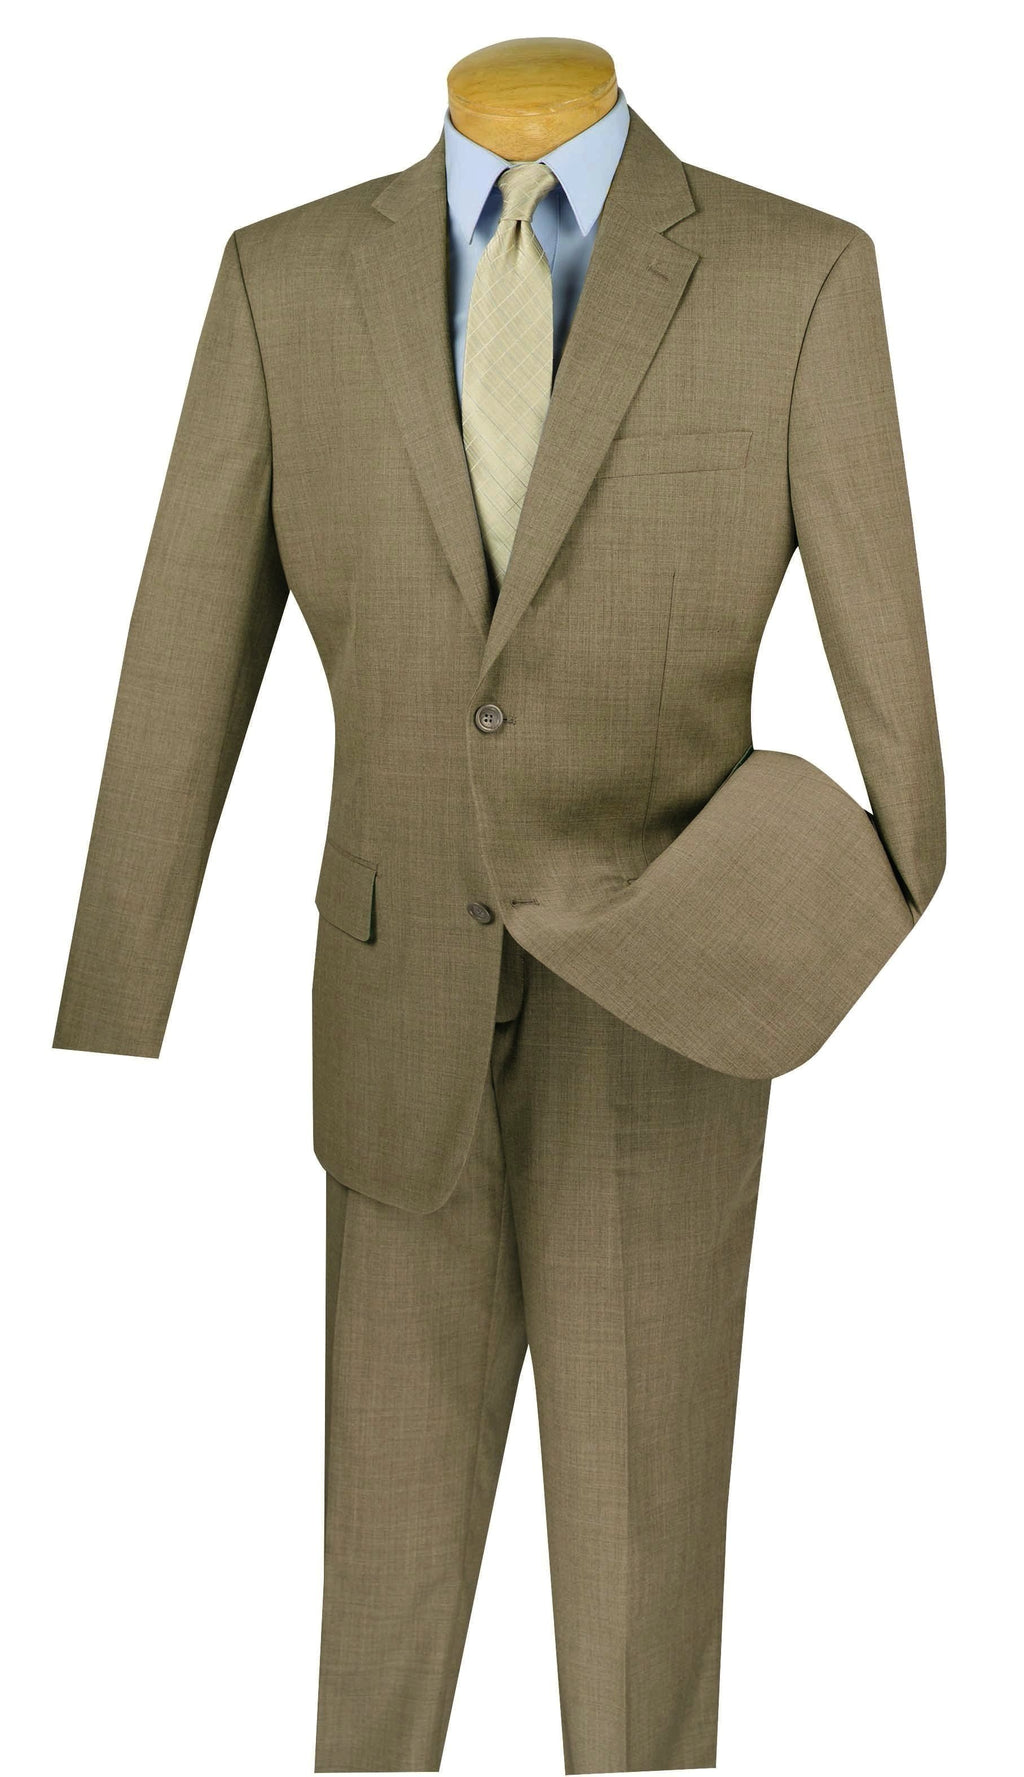 Wool Suit Regular Fit 2 Buttons Design Solid Khaki 2 Pieces